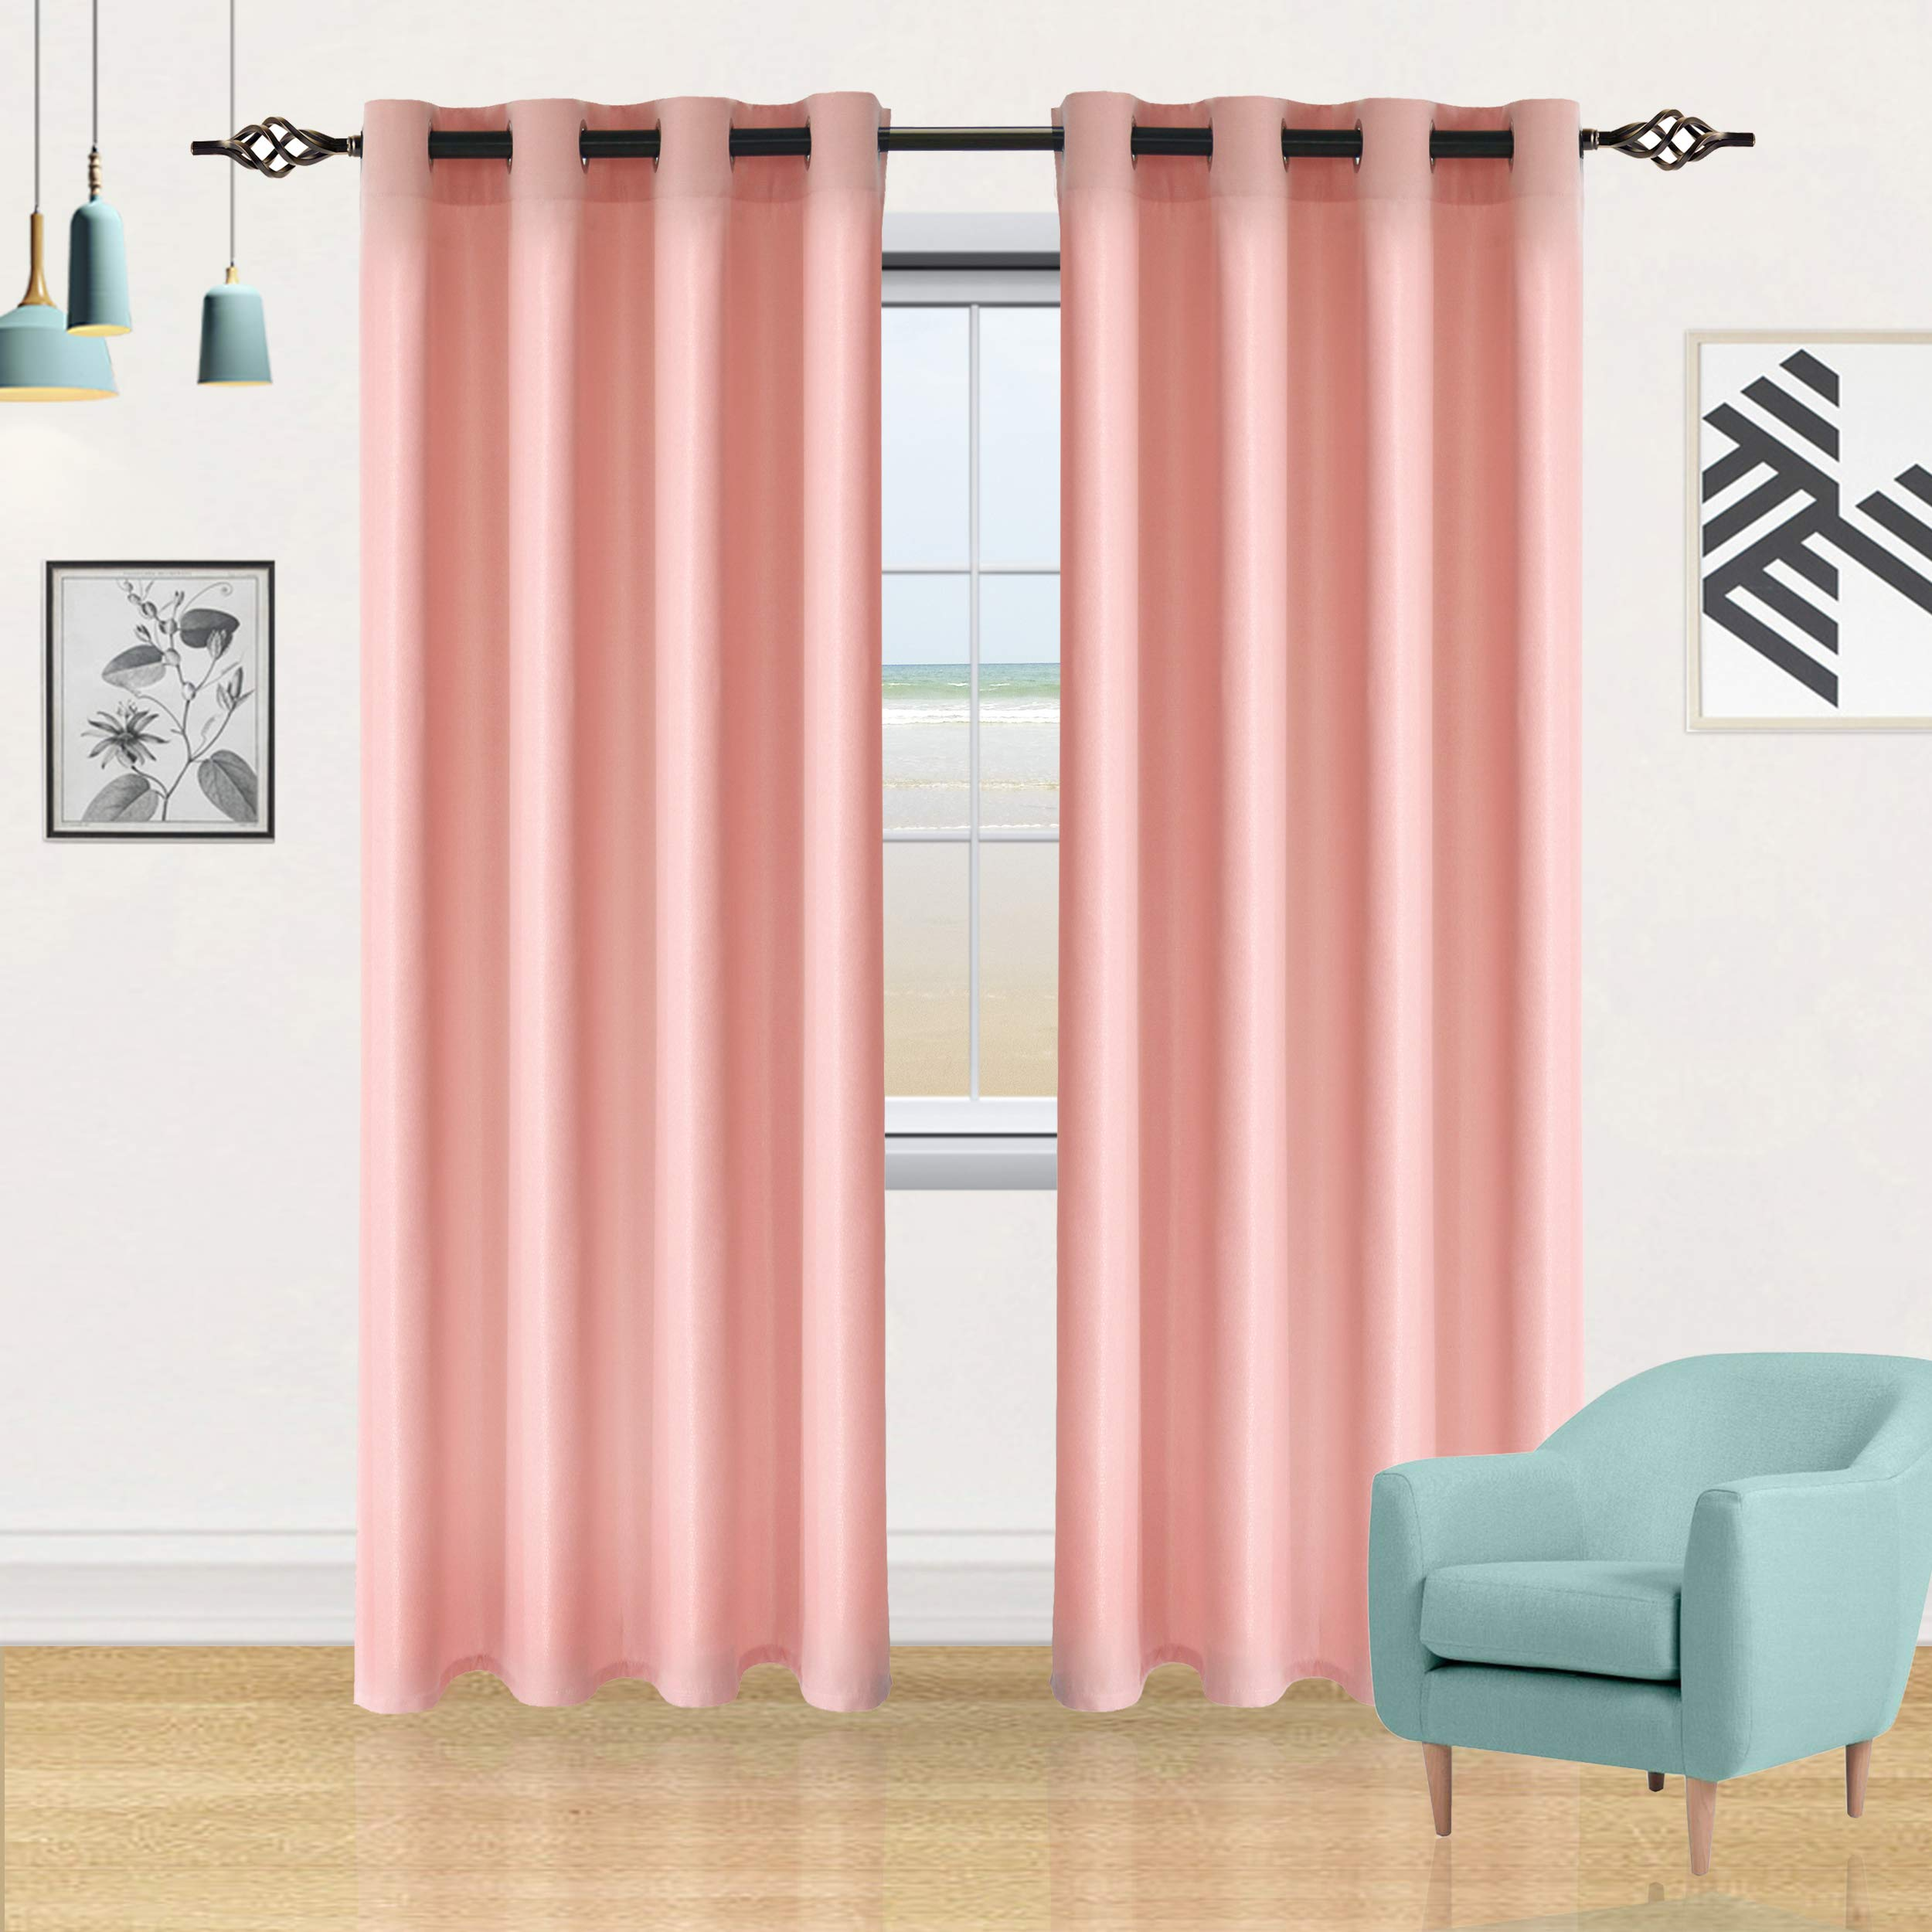 DWCN Semi Sheer Curtains Faux Linen Sunlight Filtering Grommets Country Modern Style Pink Drapes, Set of 2 52x84 Inch Long Window Curtain for Bedroom